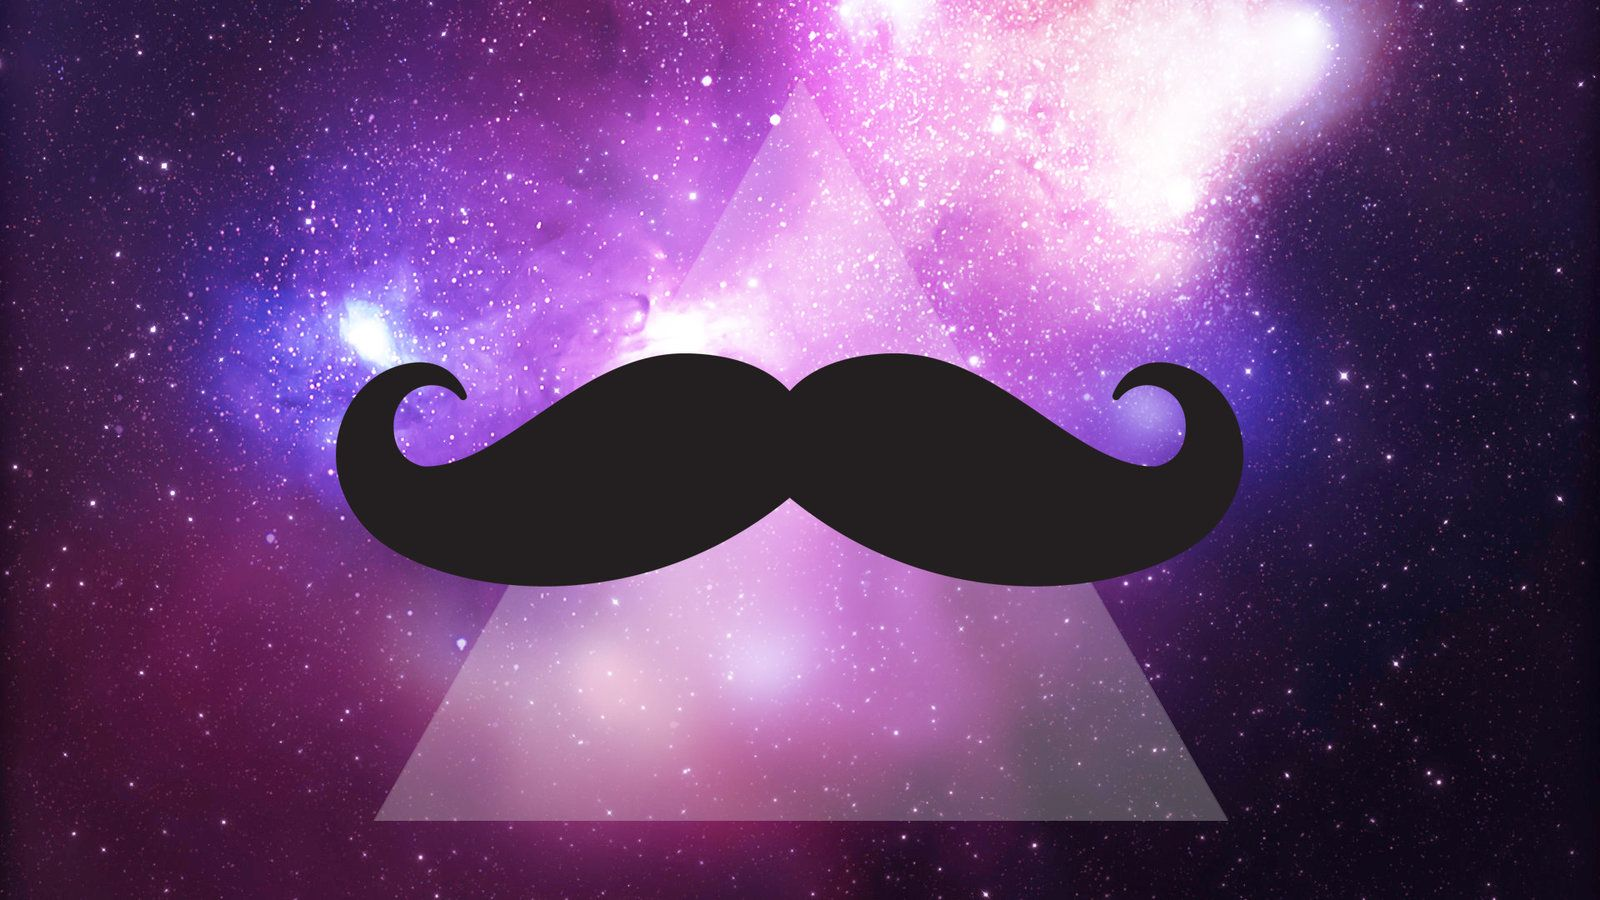 Galaxy Mustache Wallpapers - Top Free